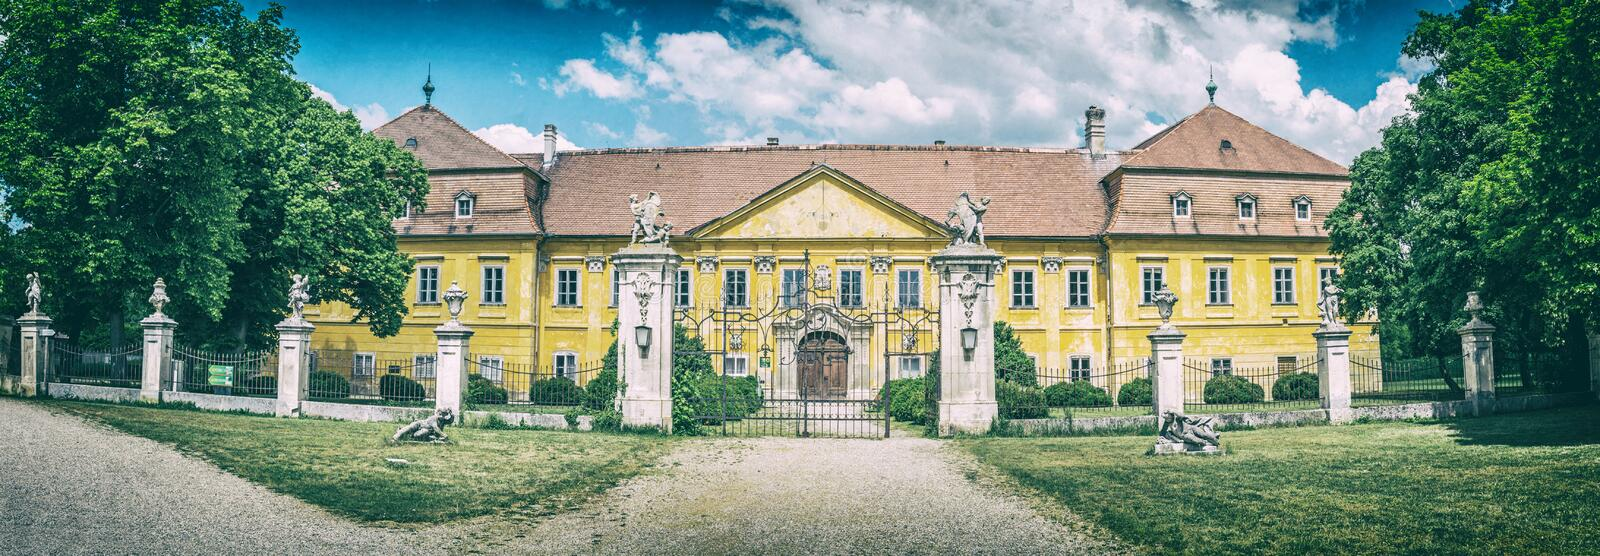 Marchegg castle, Austria, analog filter. Marchegg castle, Austria. Panoramic photo. Travel destination. Architectural scene. Analog photo filter with scratches royalty free stock photography